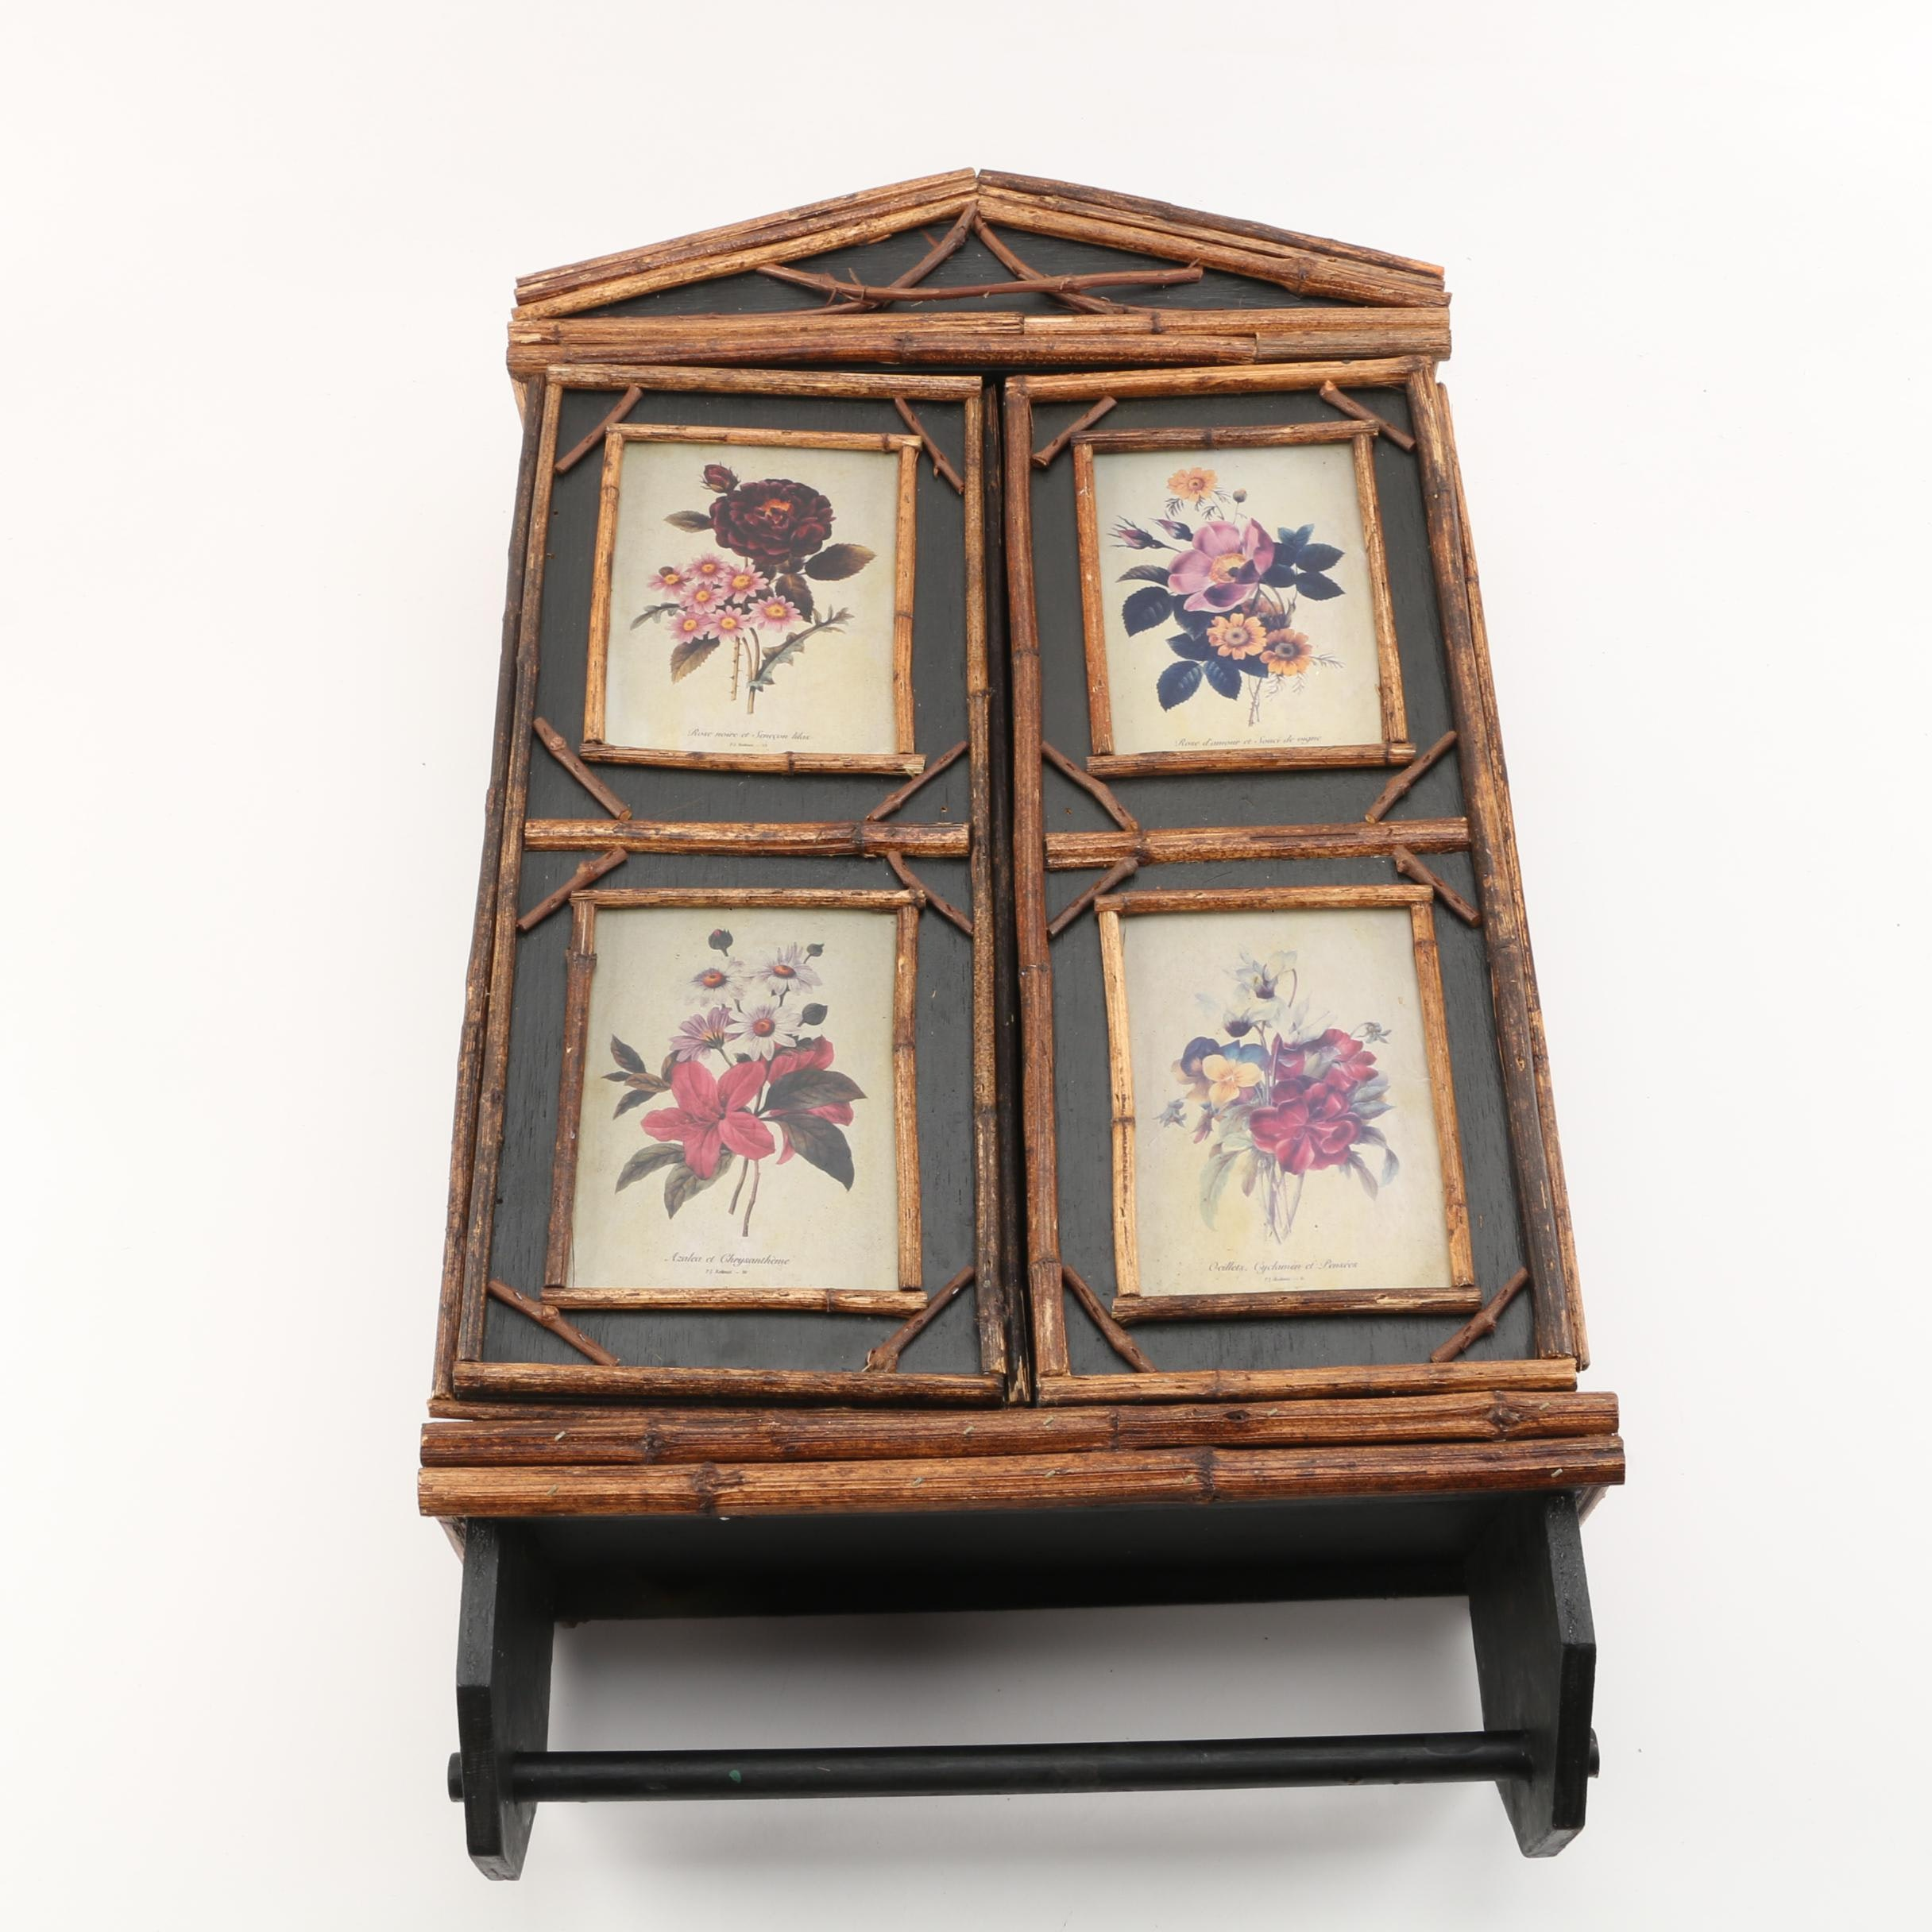 Hanging Cabinet with Twig and Flower Theme